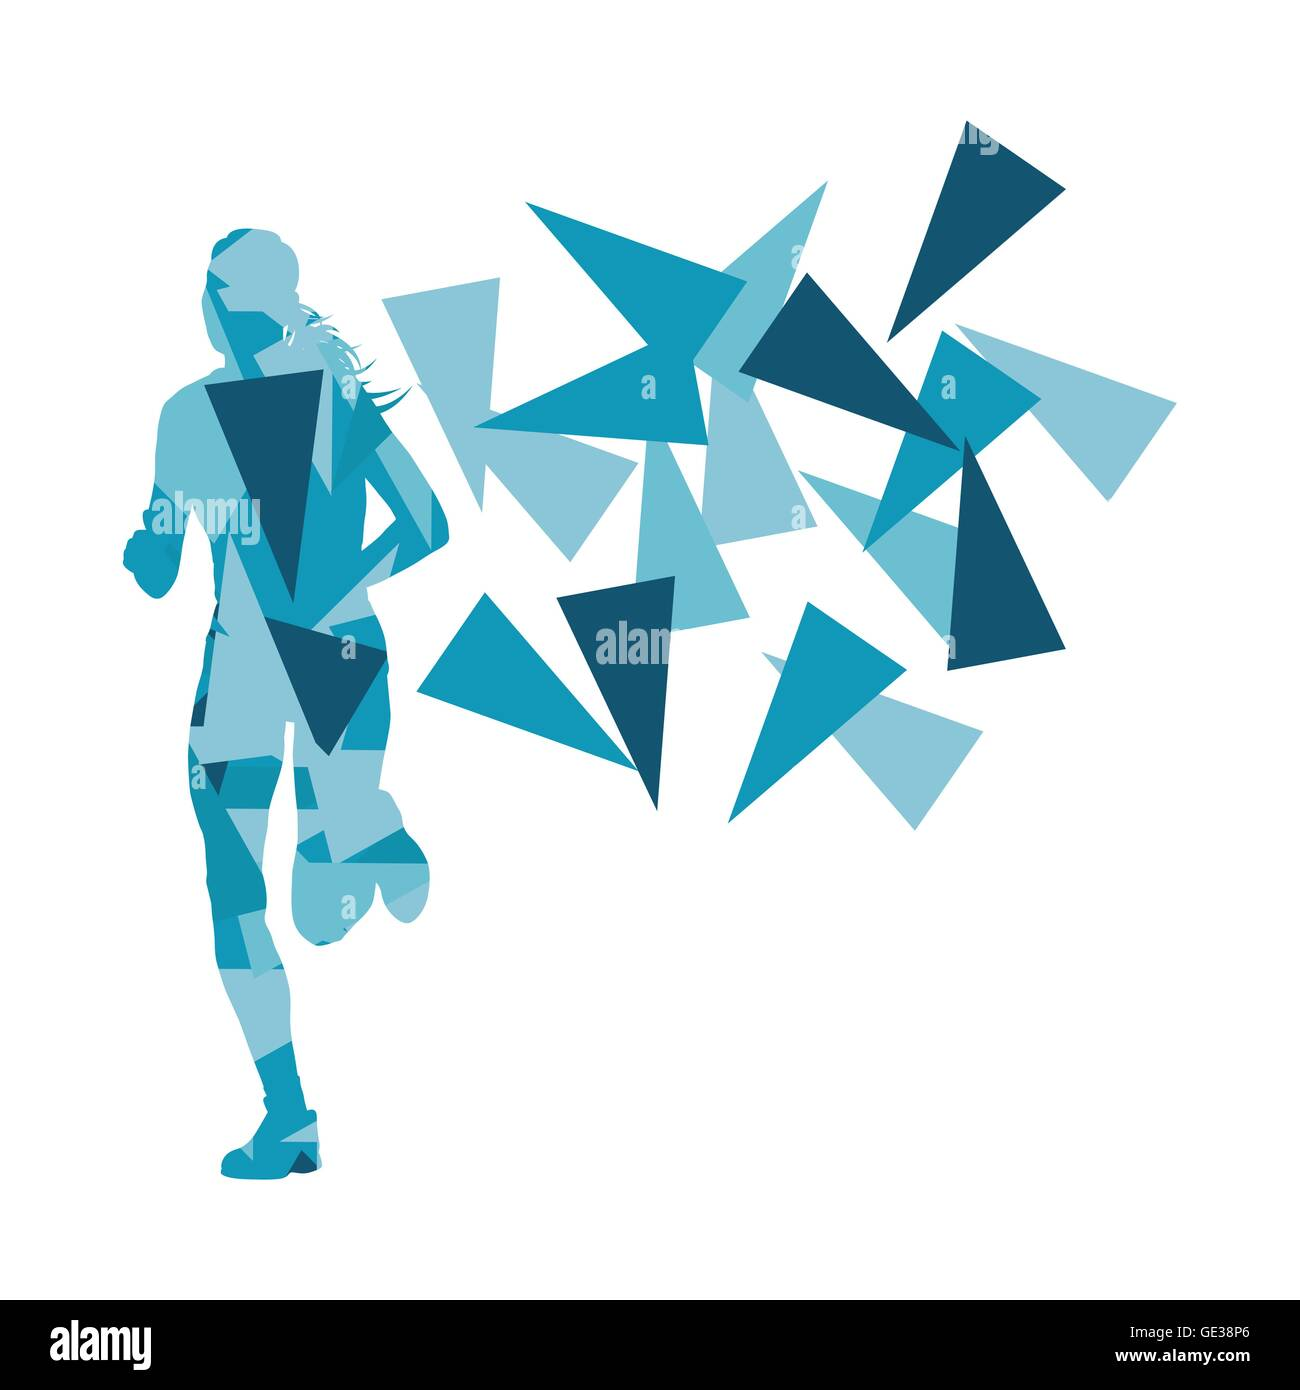 marathon runner abstract vector background concept made of